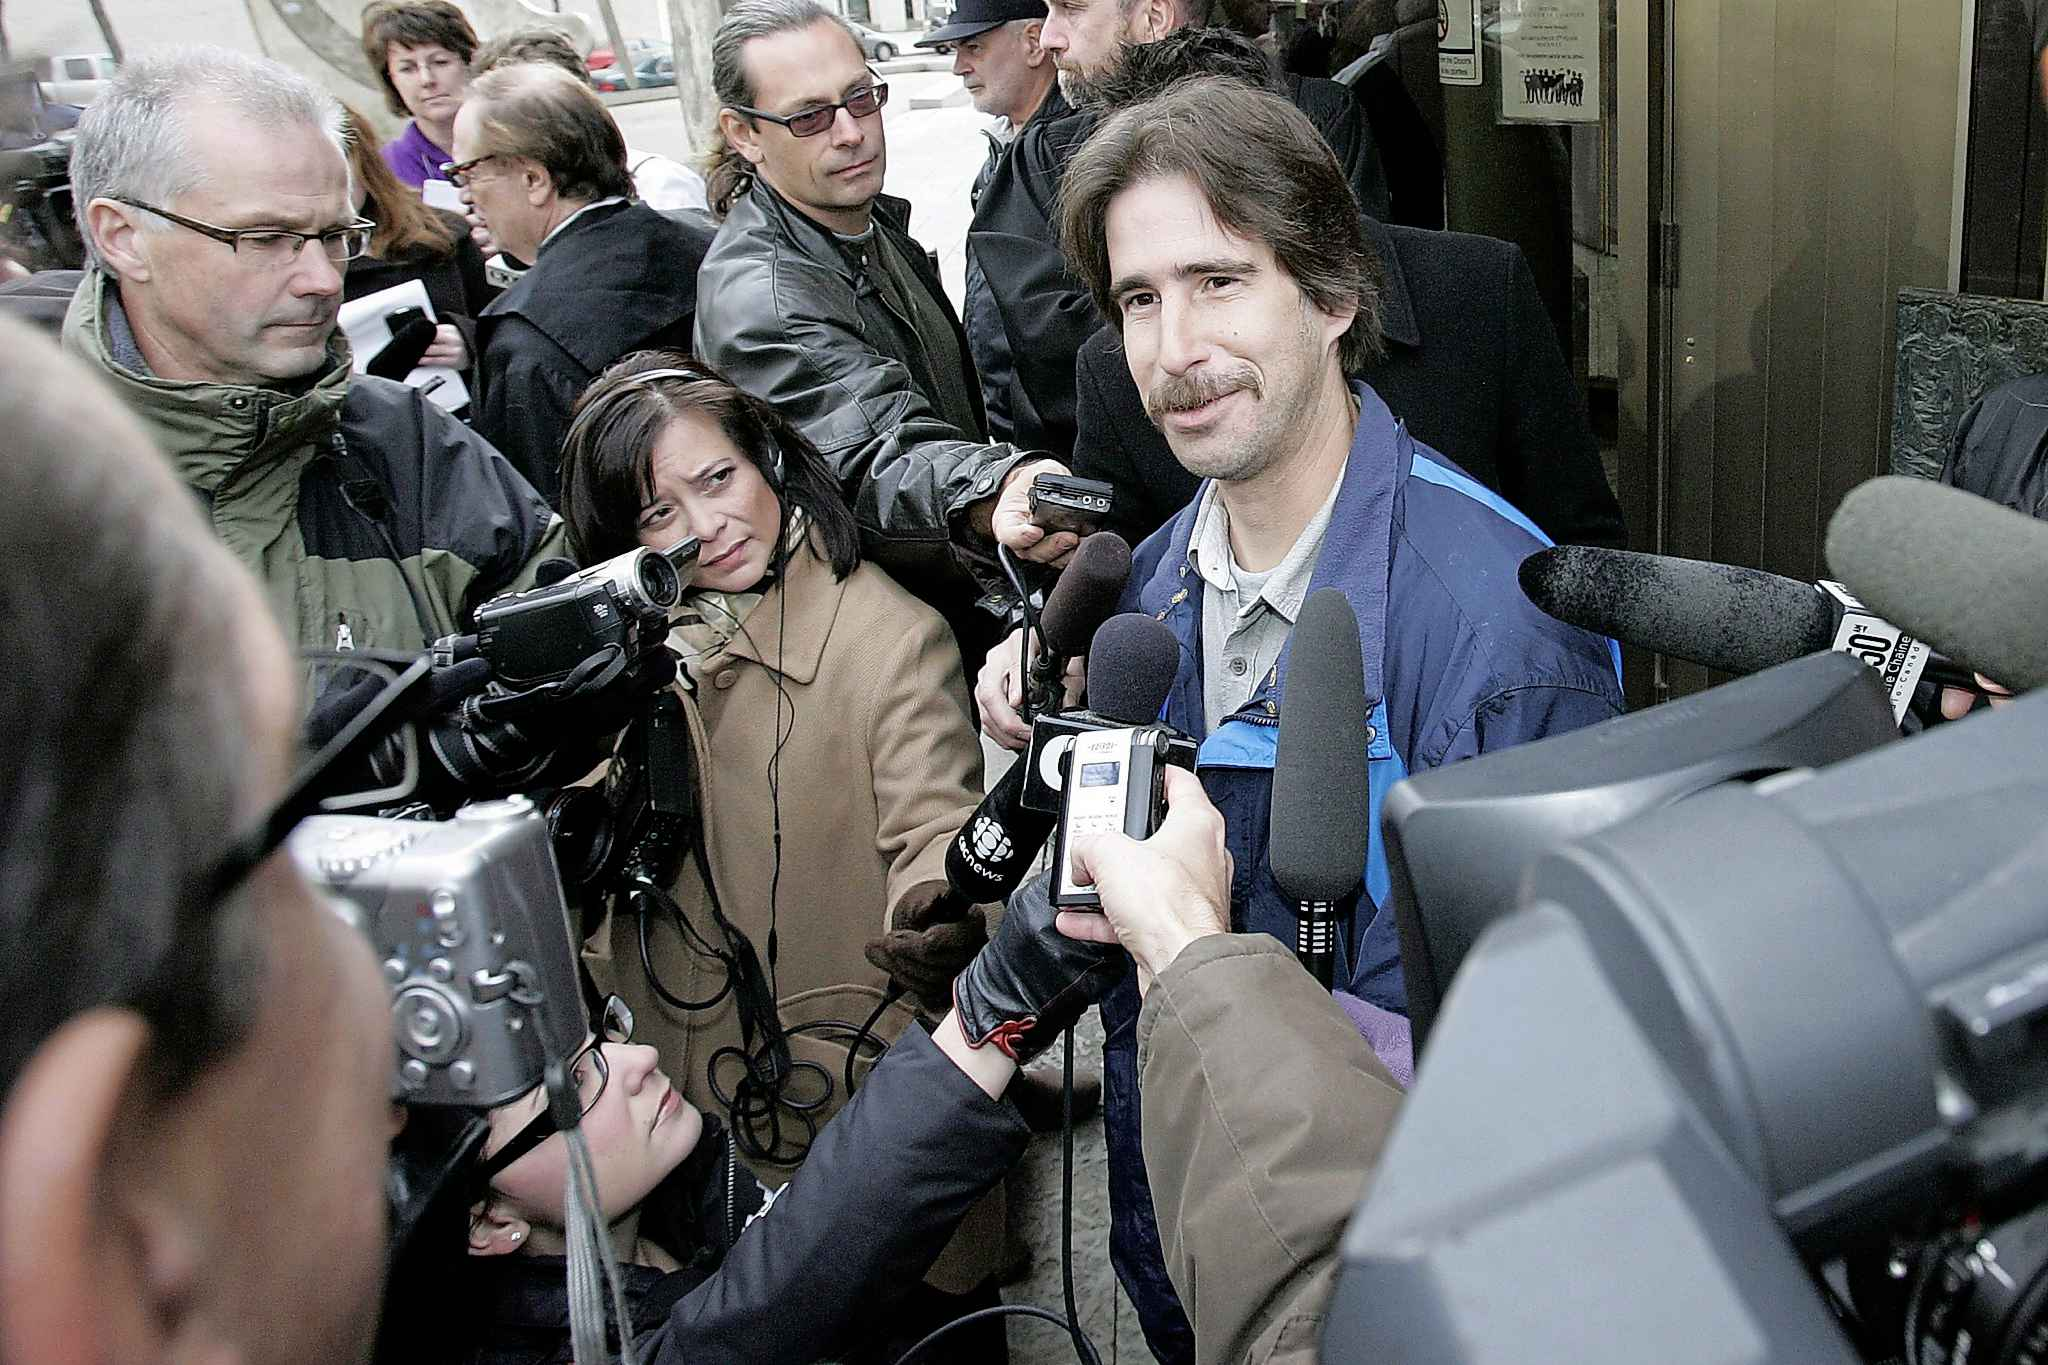 Kyle Unger speaks with media outside court in 2009.